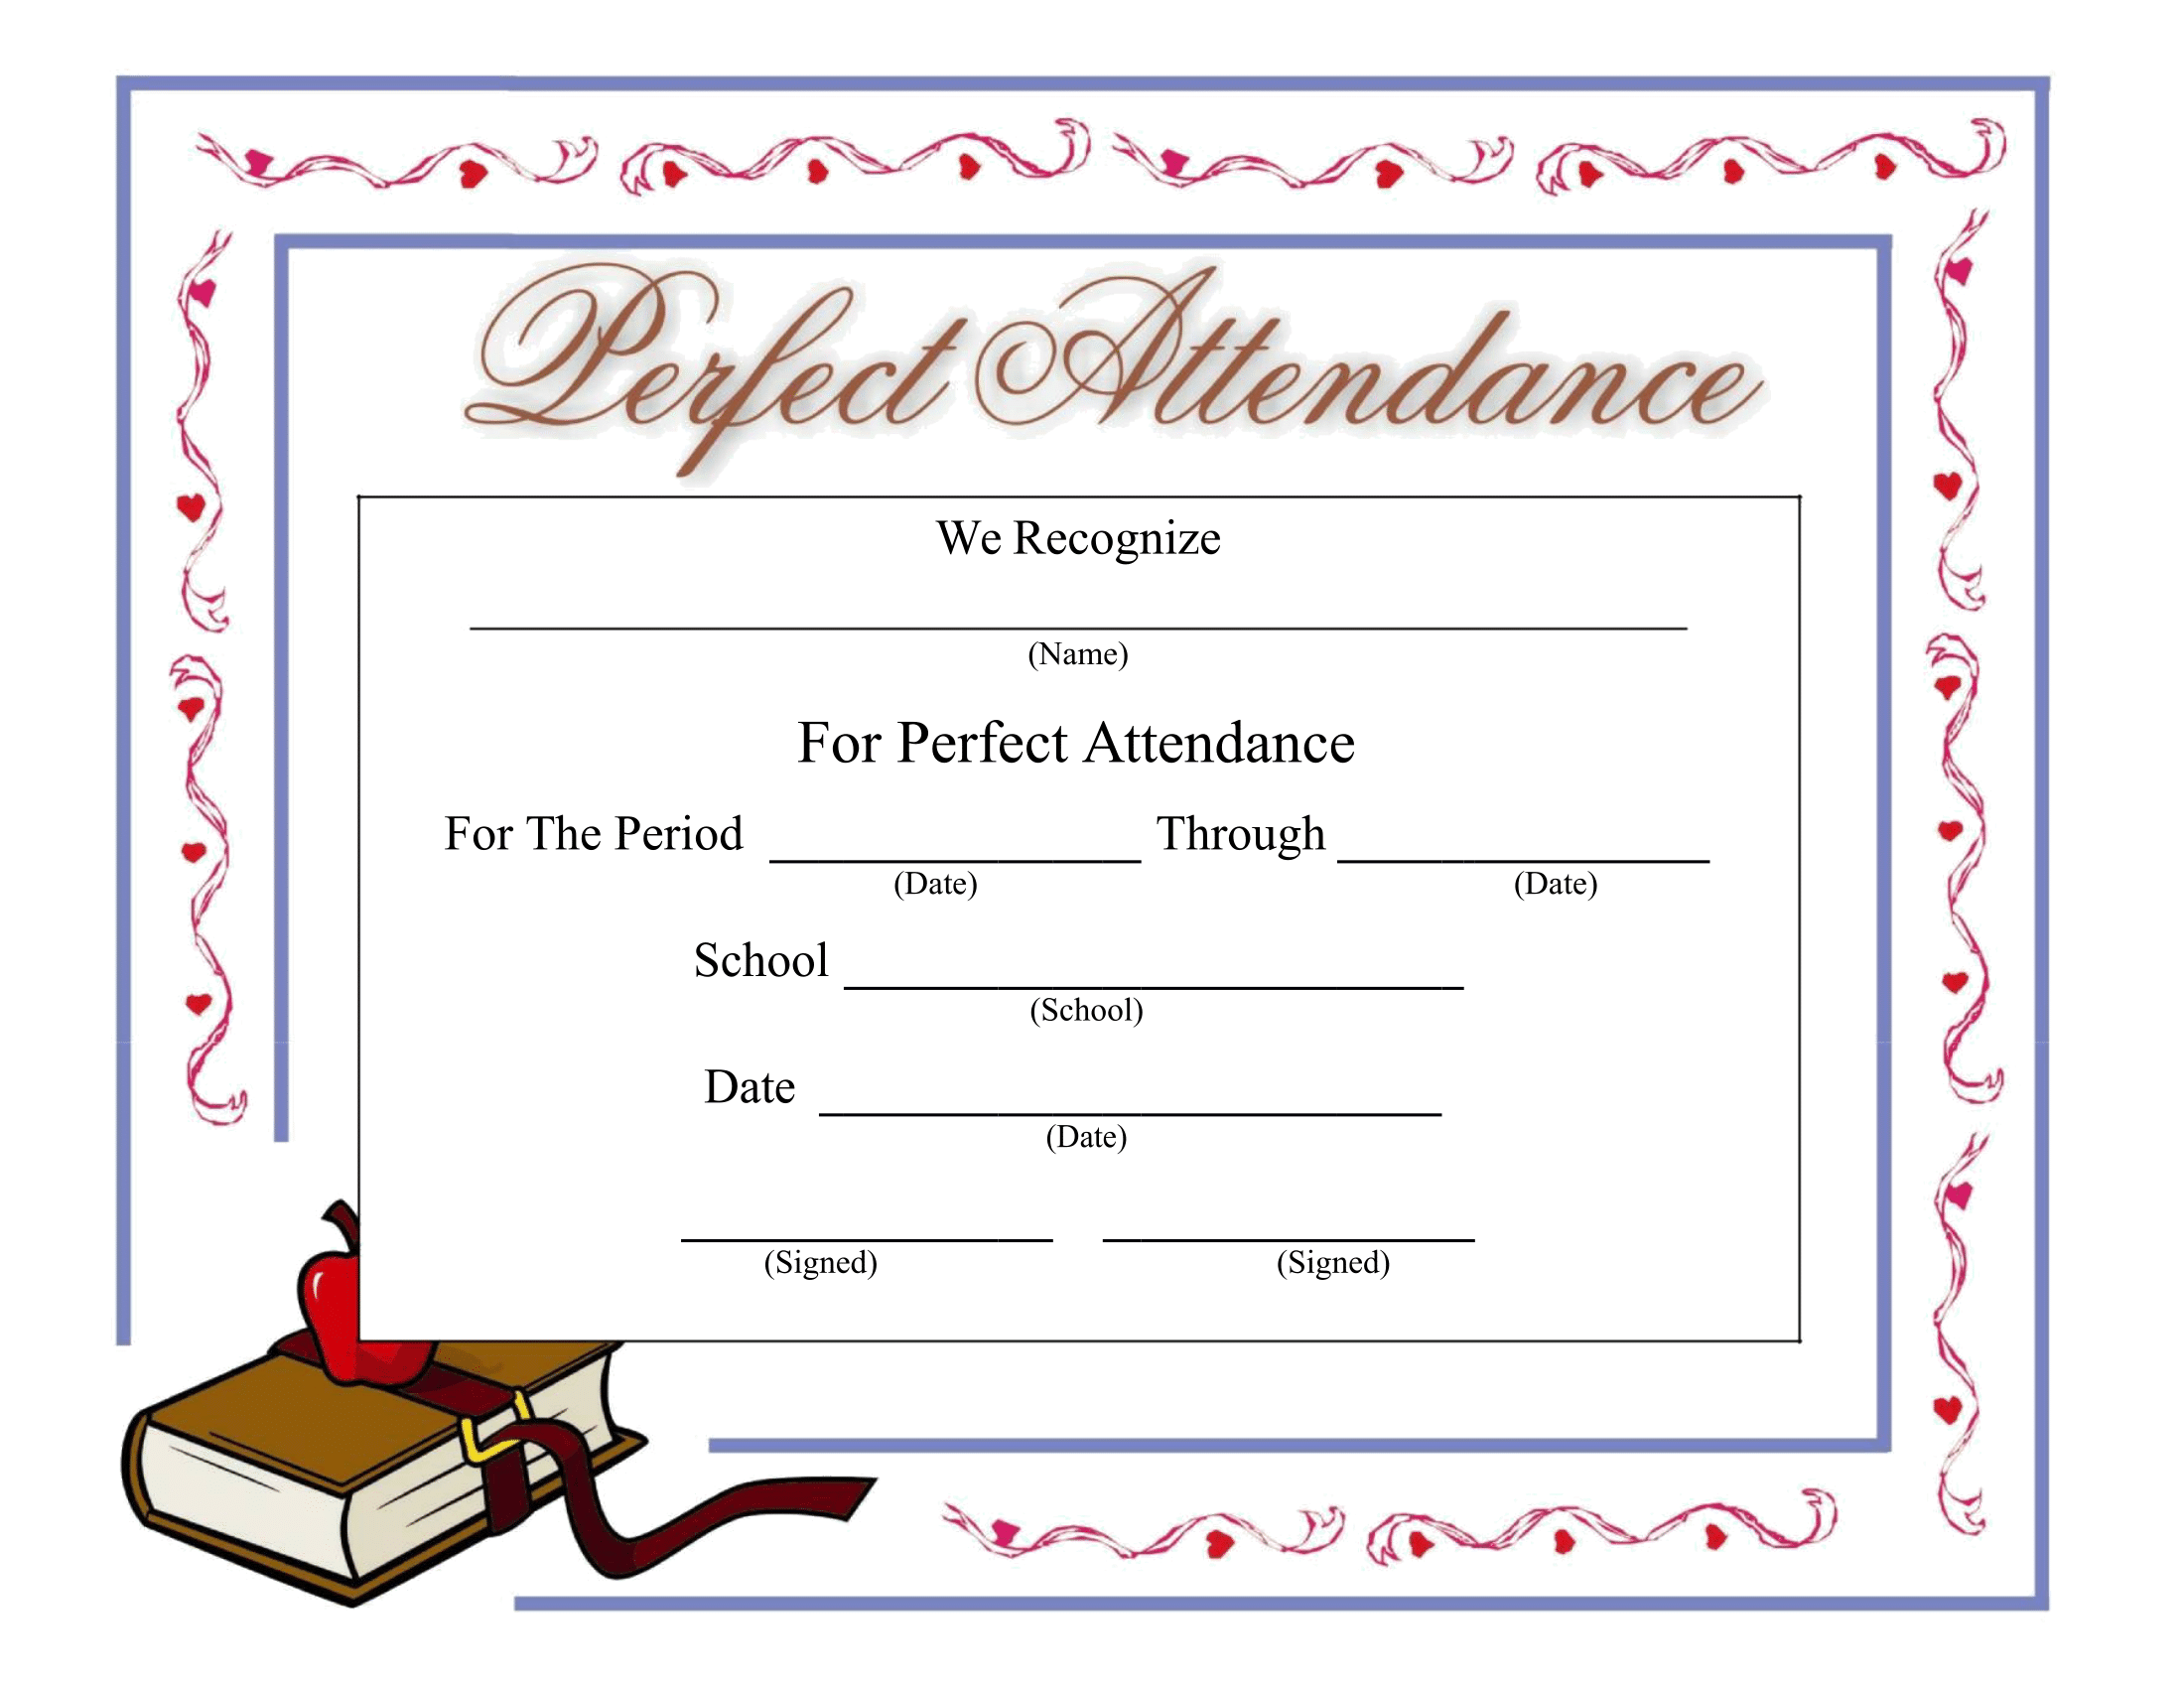 Perfect Attendance Certificate – Download a FREE Template